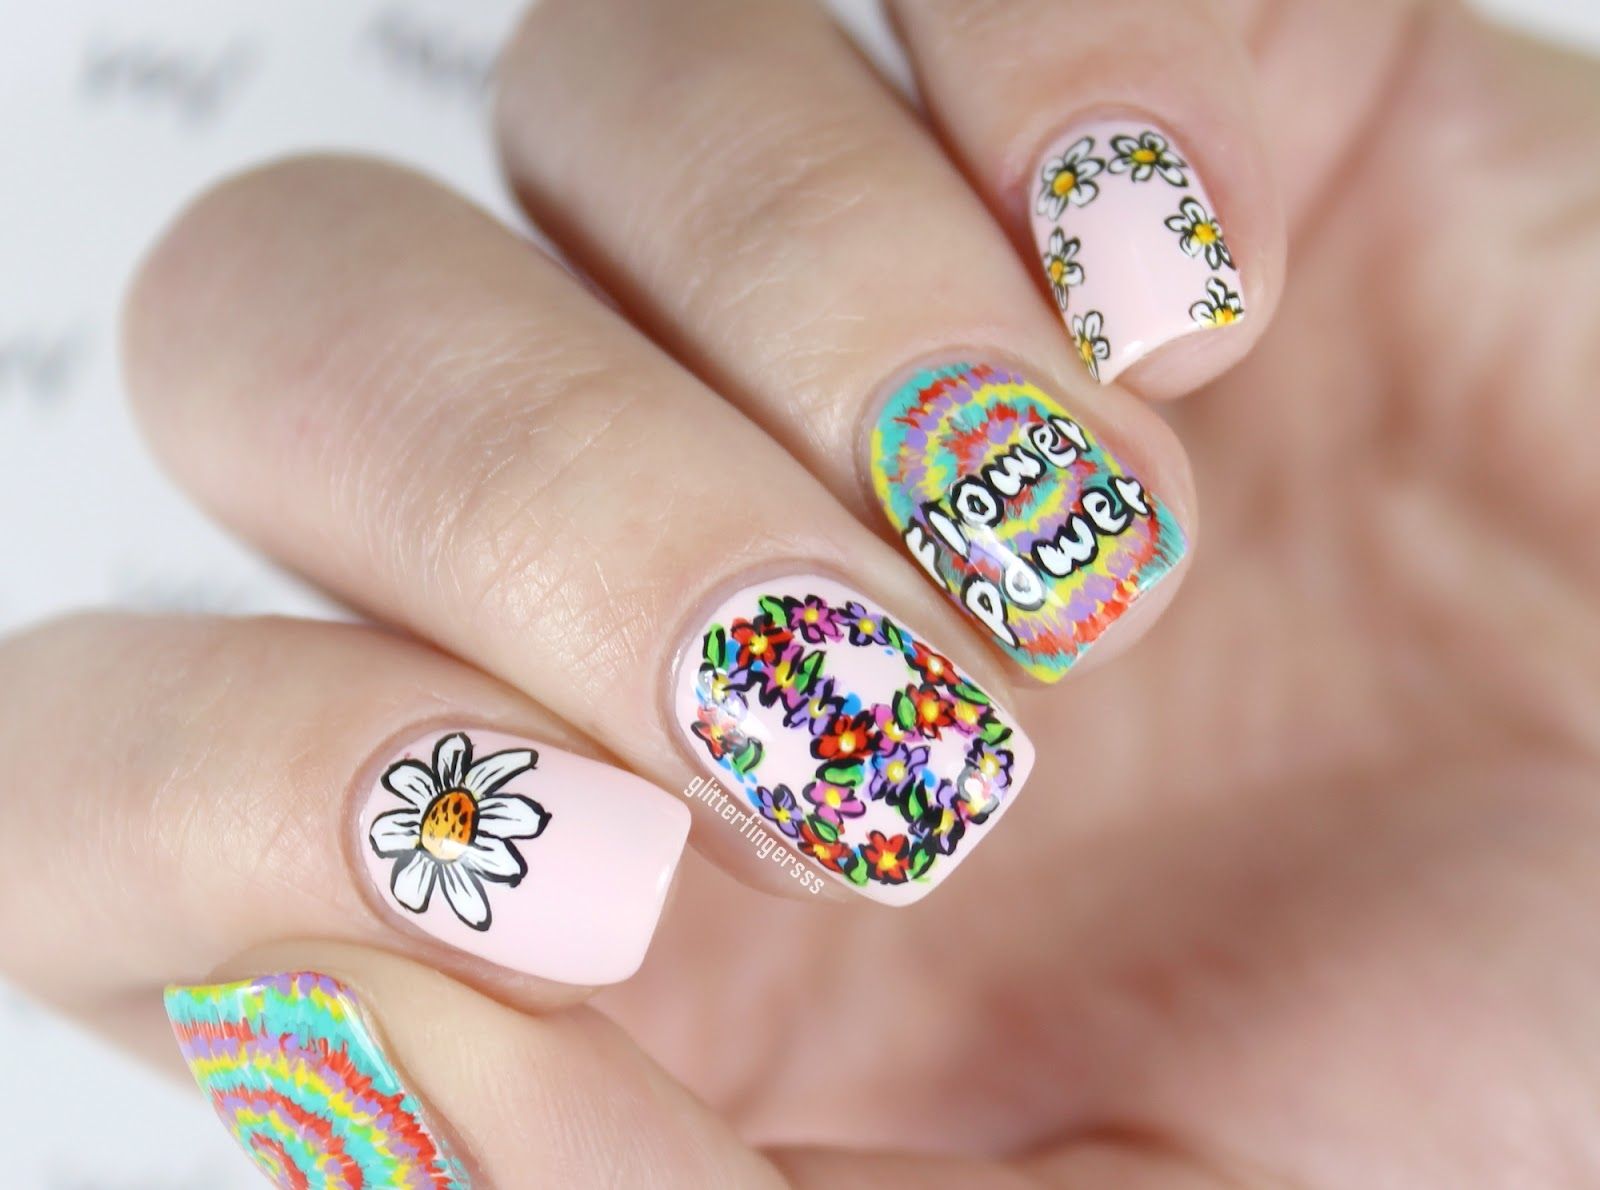 Nail art hippie glitterfingersss in english my fave is the ring and middle finger prinsesfo Choice Image